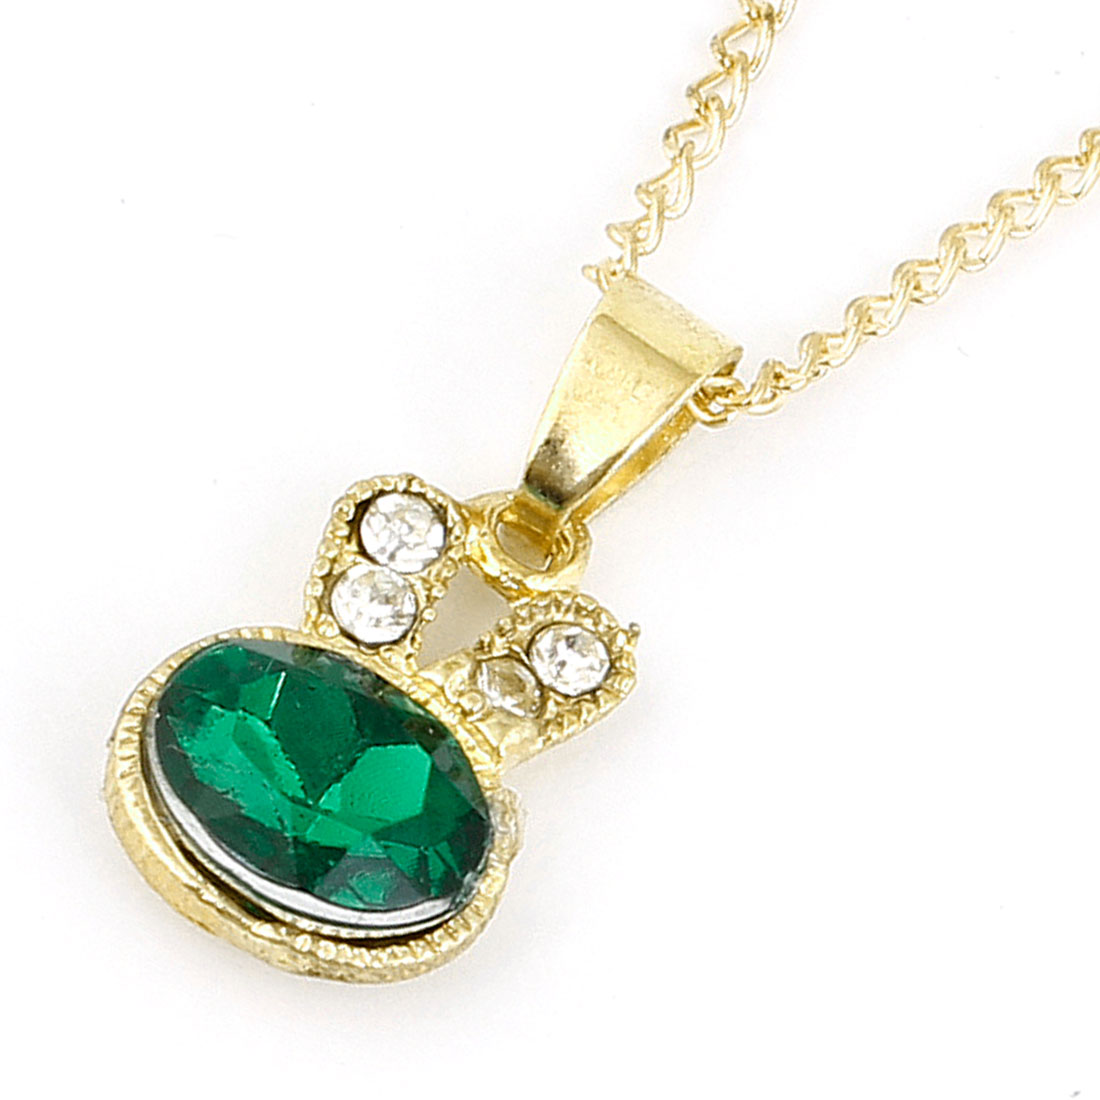 Woman Green Glitter Rhinestones Inlaid Rabbit Shaped Pendant Necklace